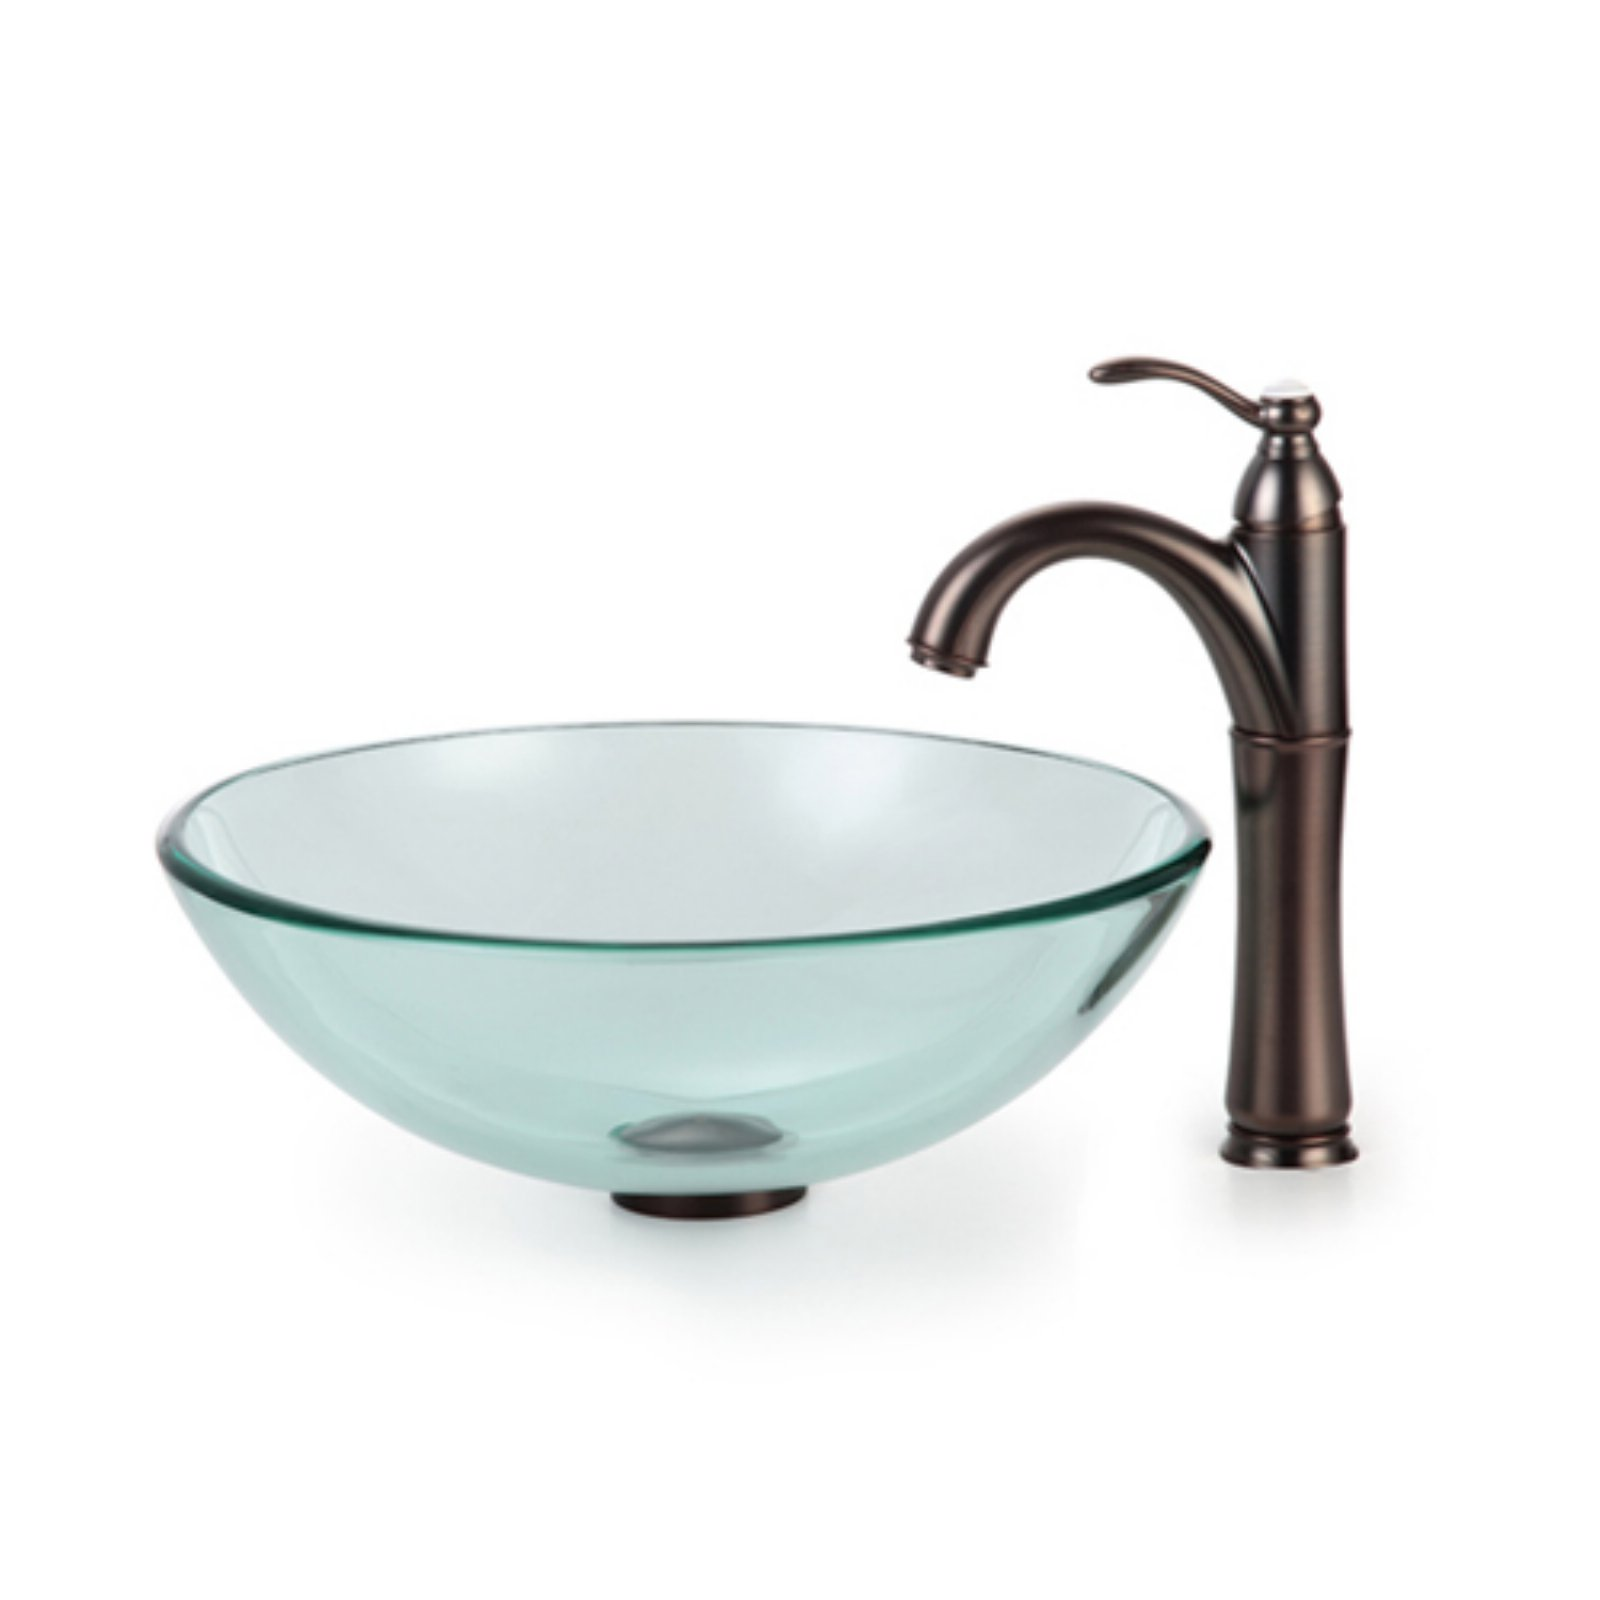 Kraus C GV 101 12mm 1005 Clear Glass Vessel Sink And Riviera